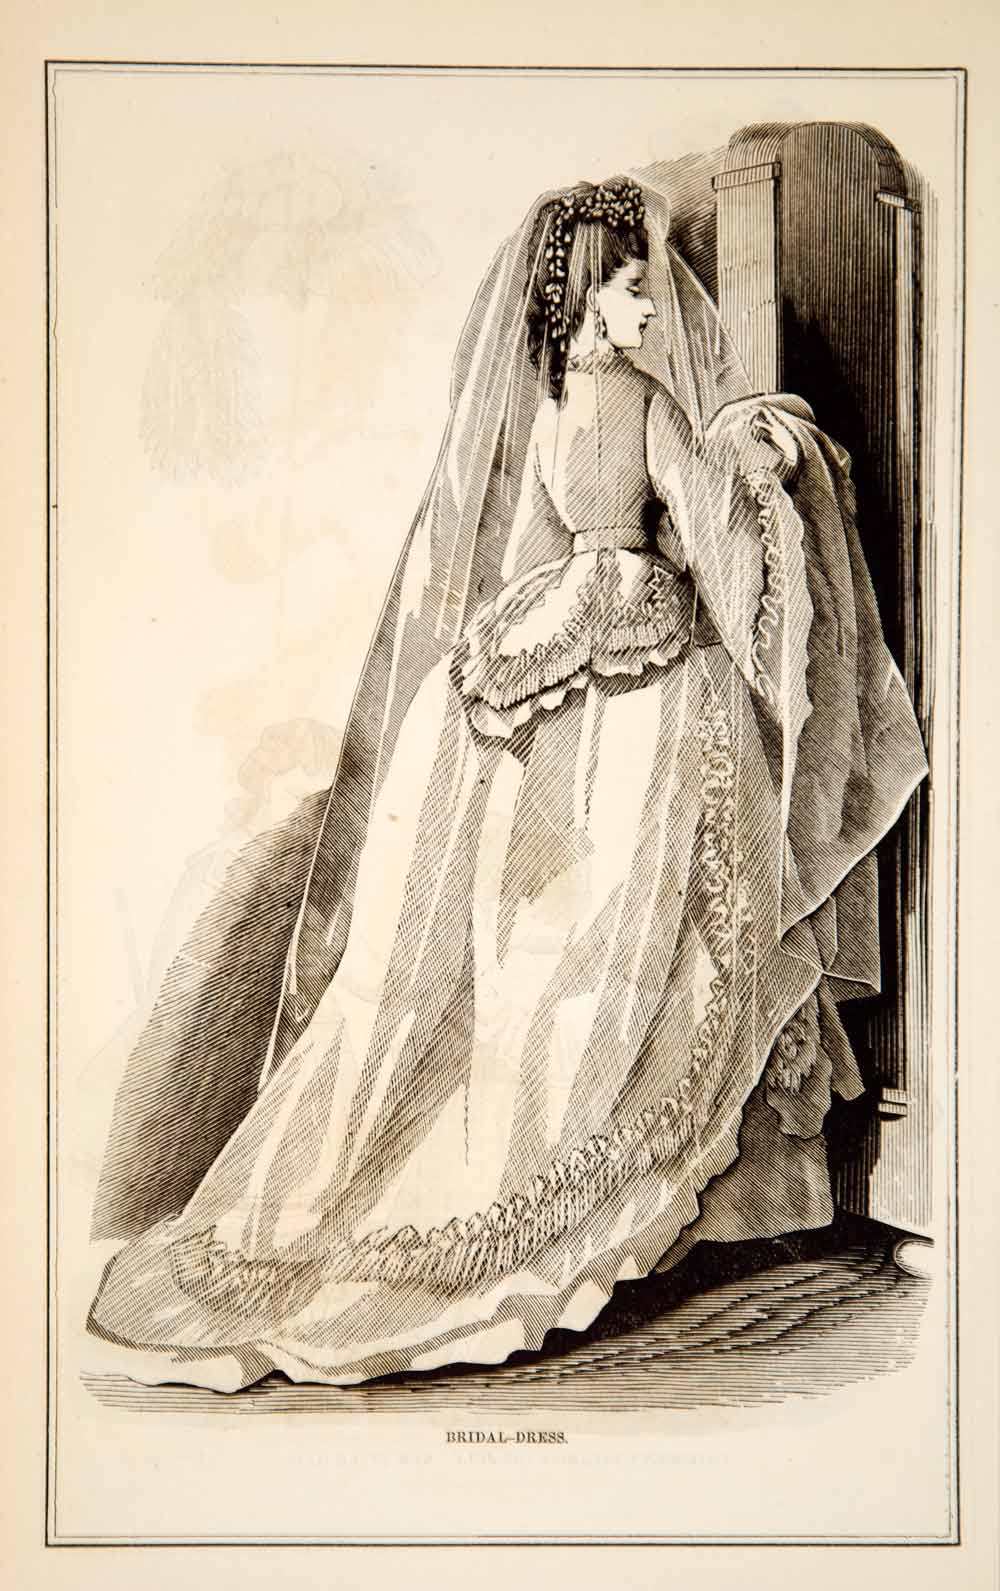 1870 Wood Engraving Victorian Bride Lady Bridal Wedding Dress Veil Train YPM3